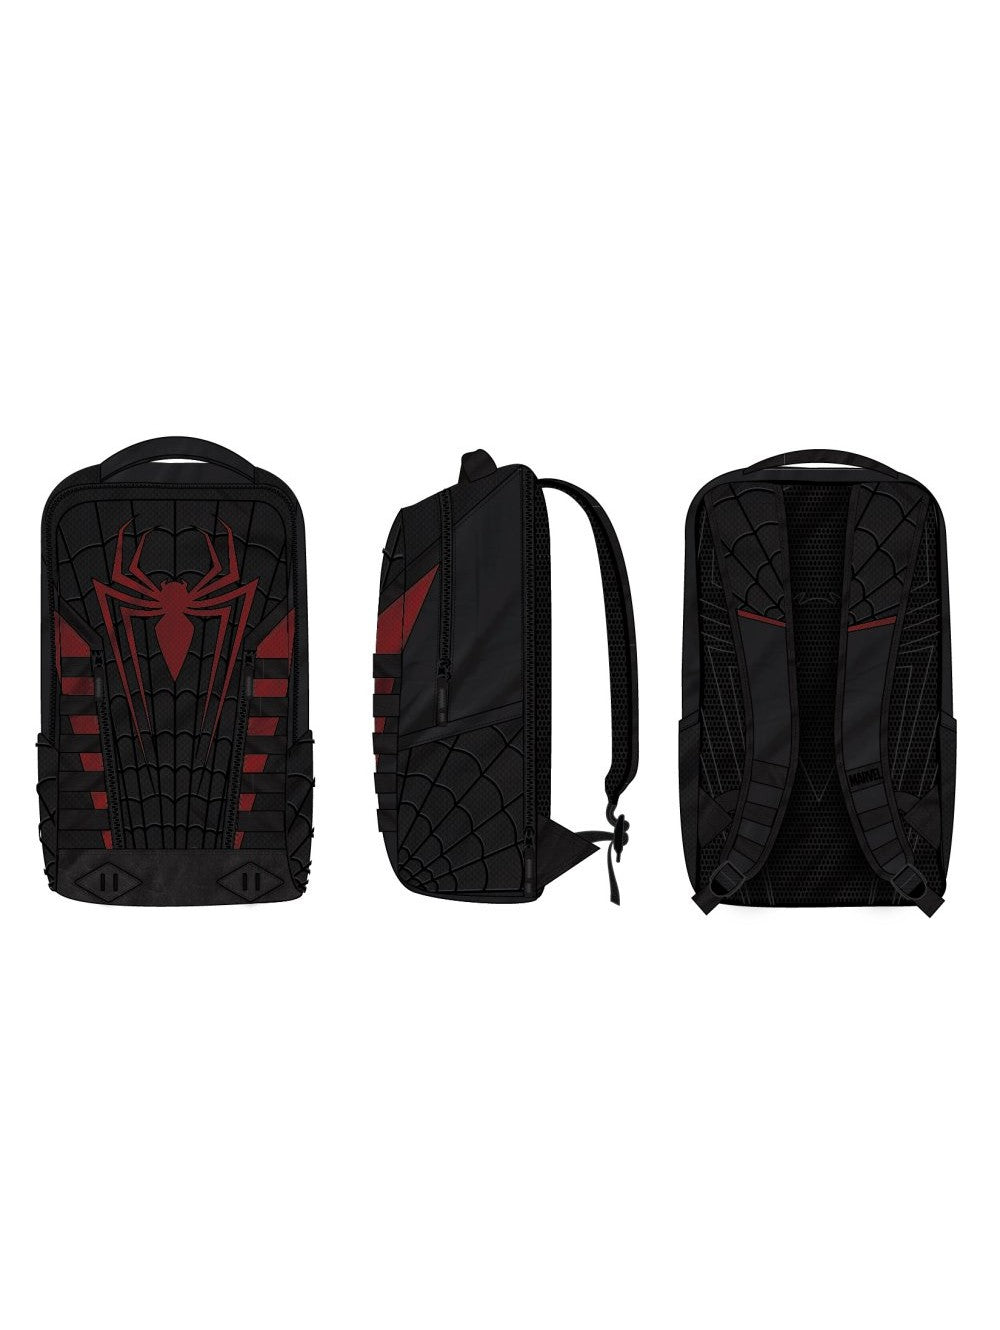 Spider-Man Built Up Black and Red Backpack